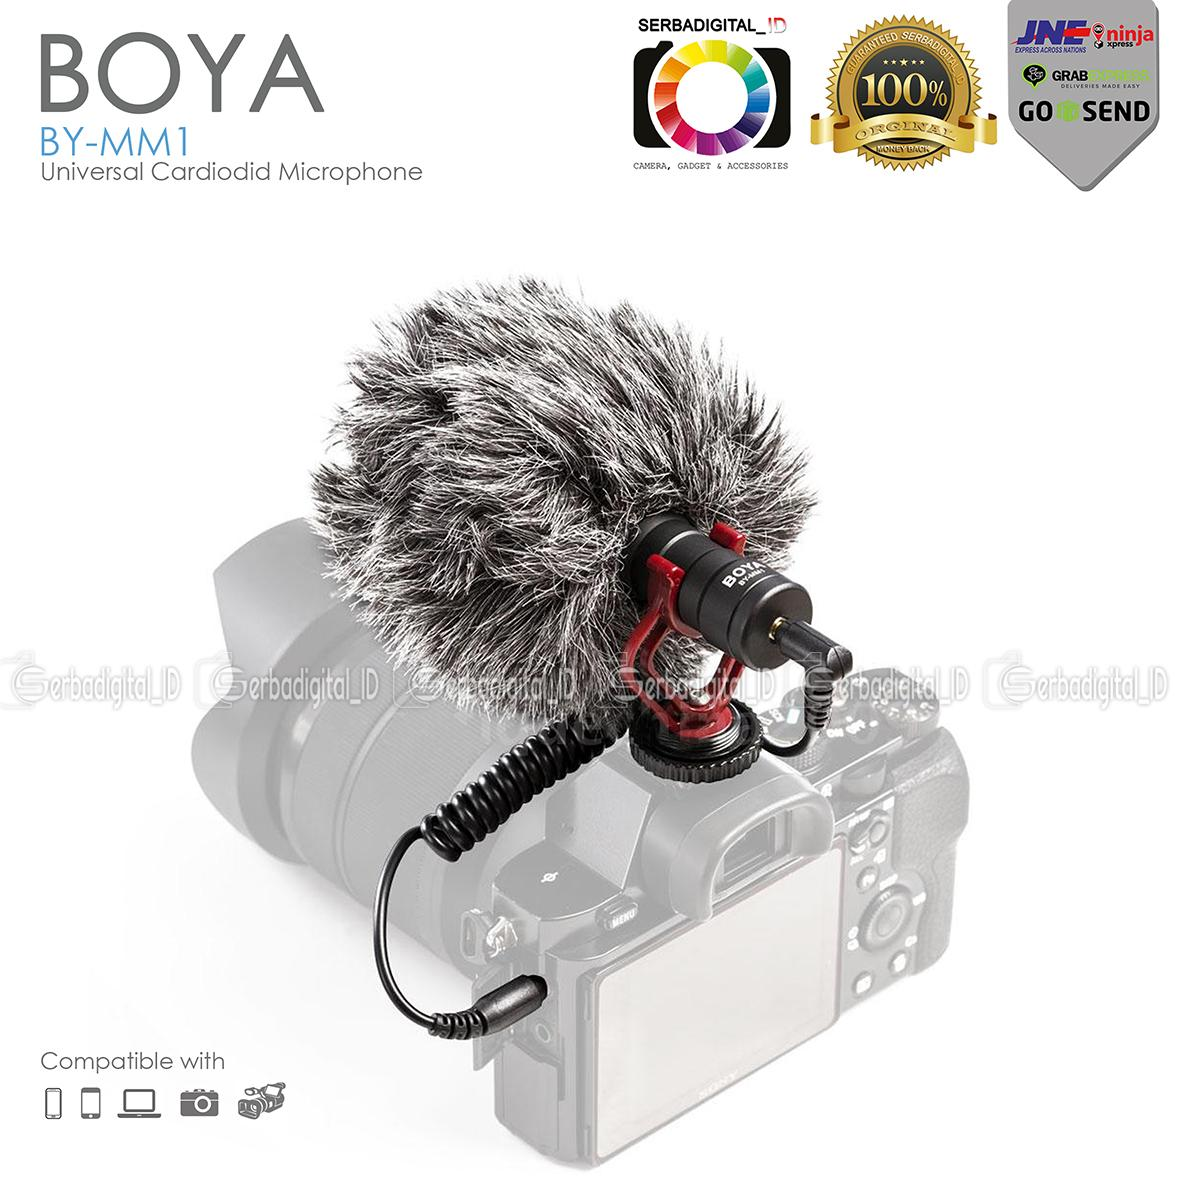 Boya BY-MM1 Cardiodid Microphone Shotgun For DSLR,Video,Android Vlog